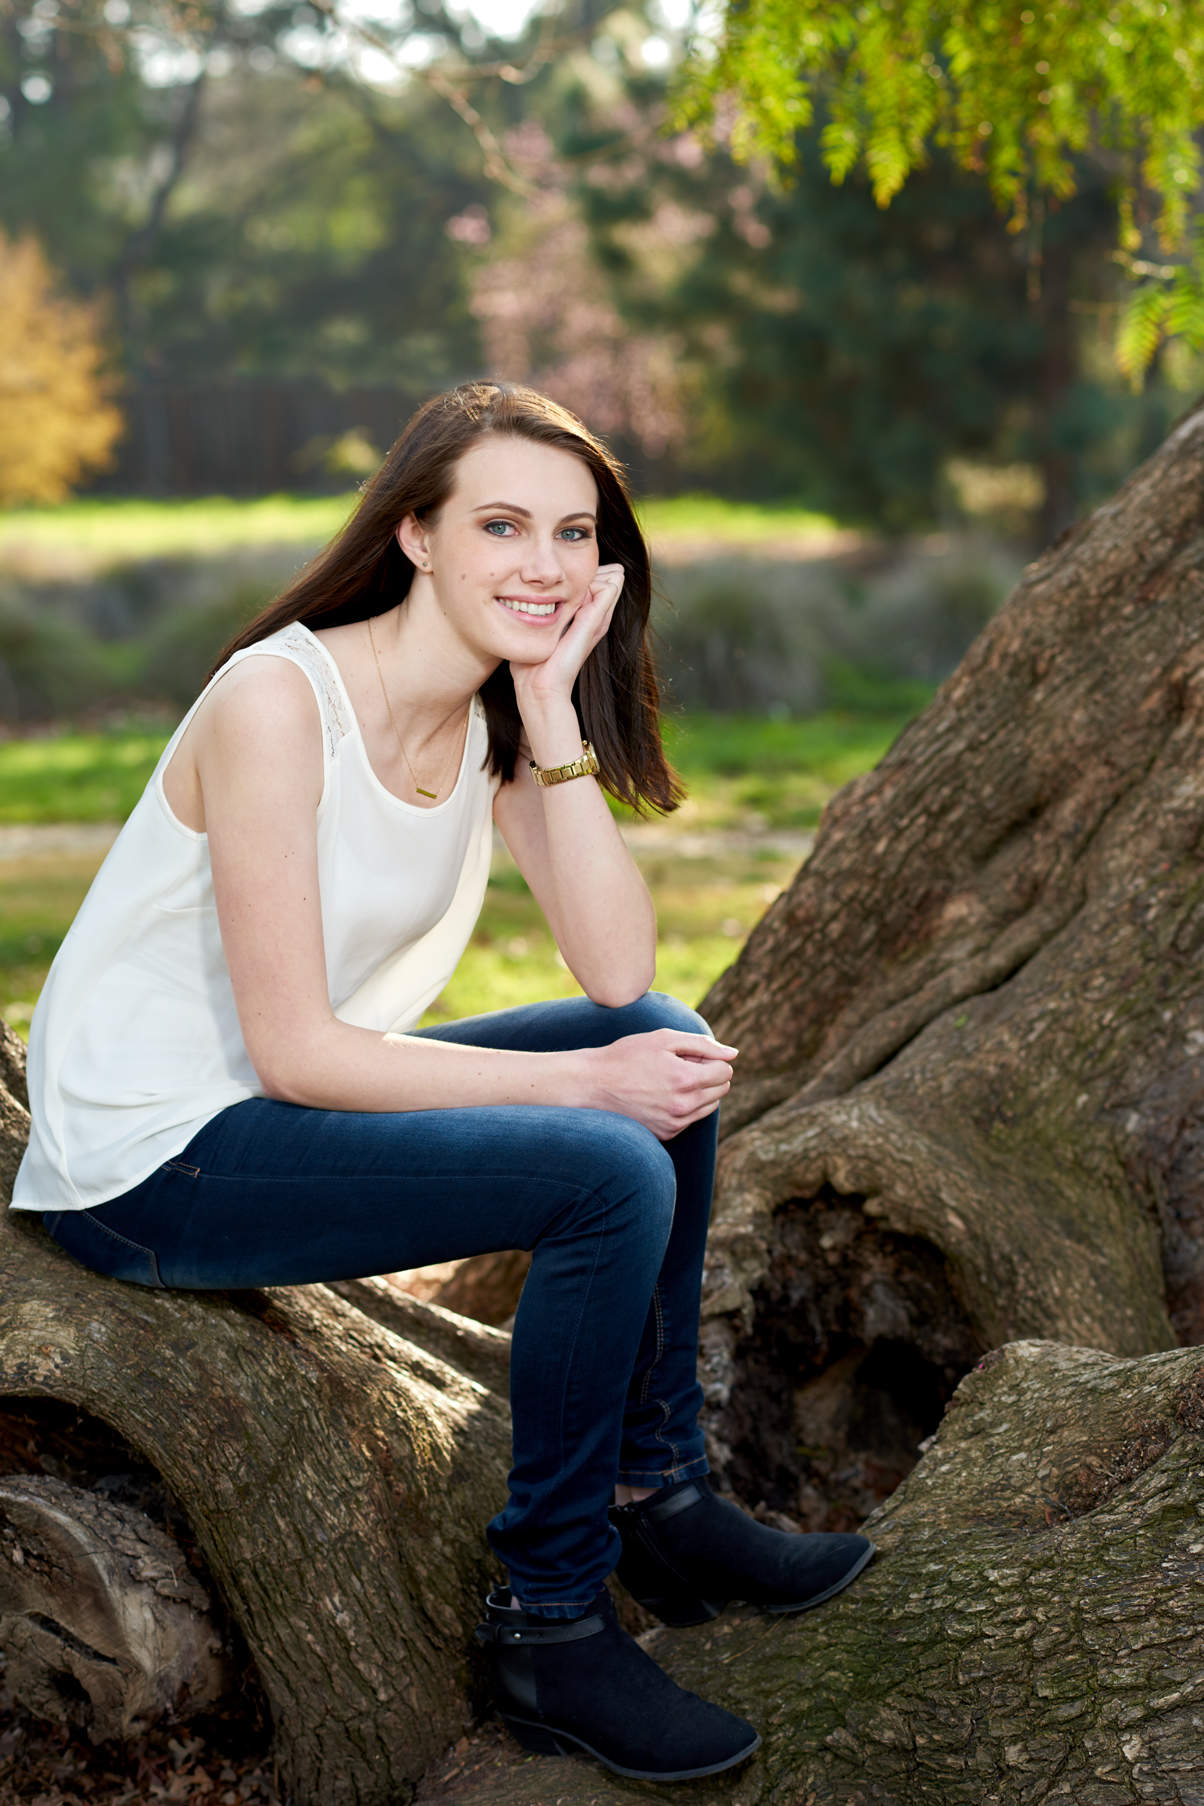 High school female senior sitting on low resting tree trunk in casual pose.